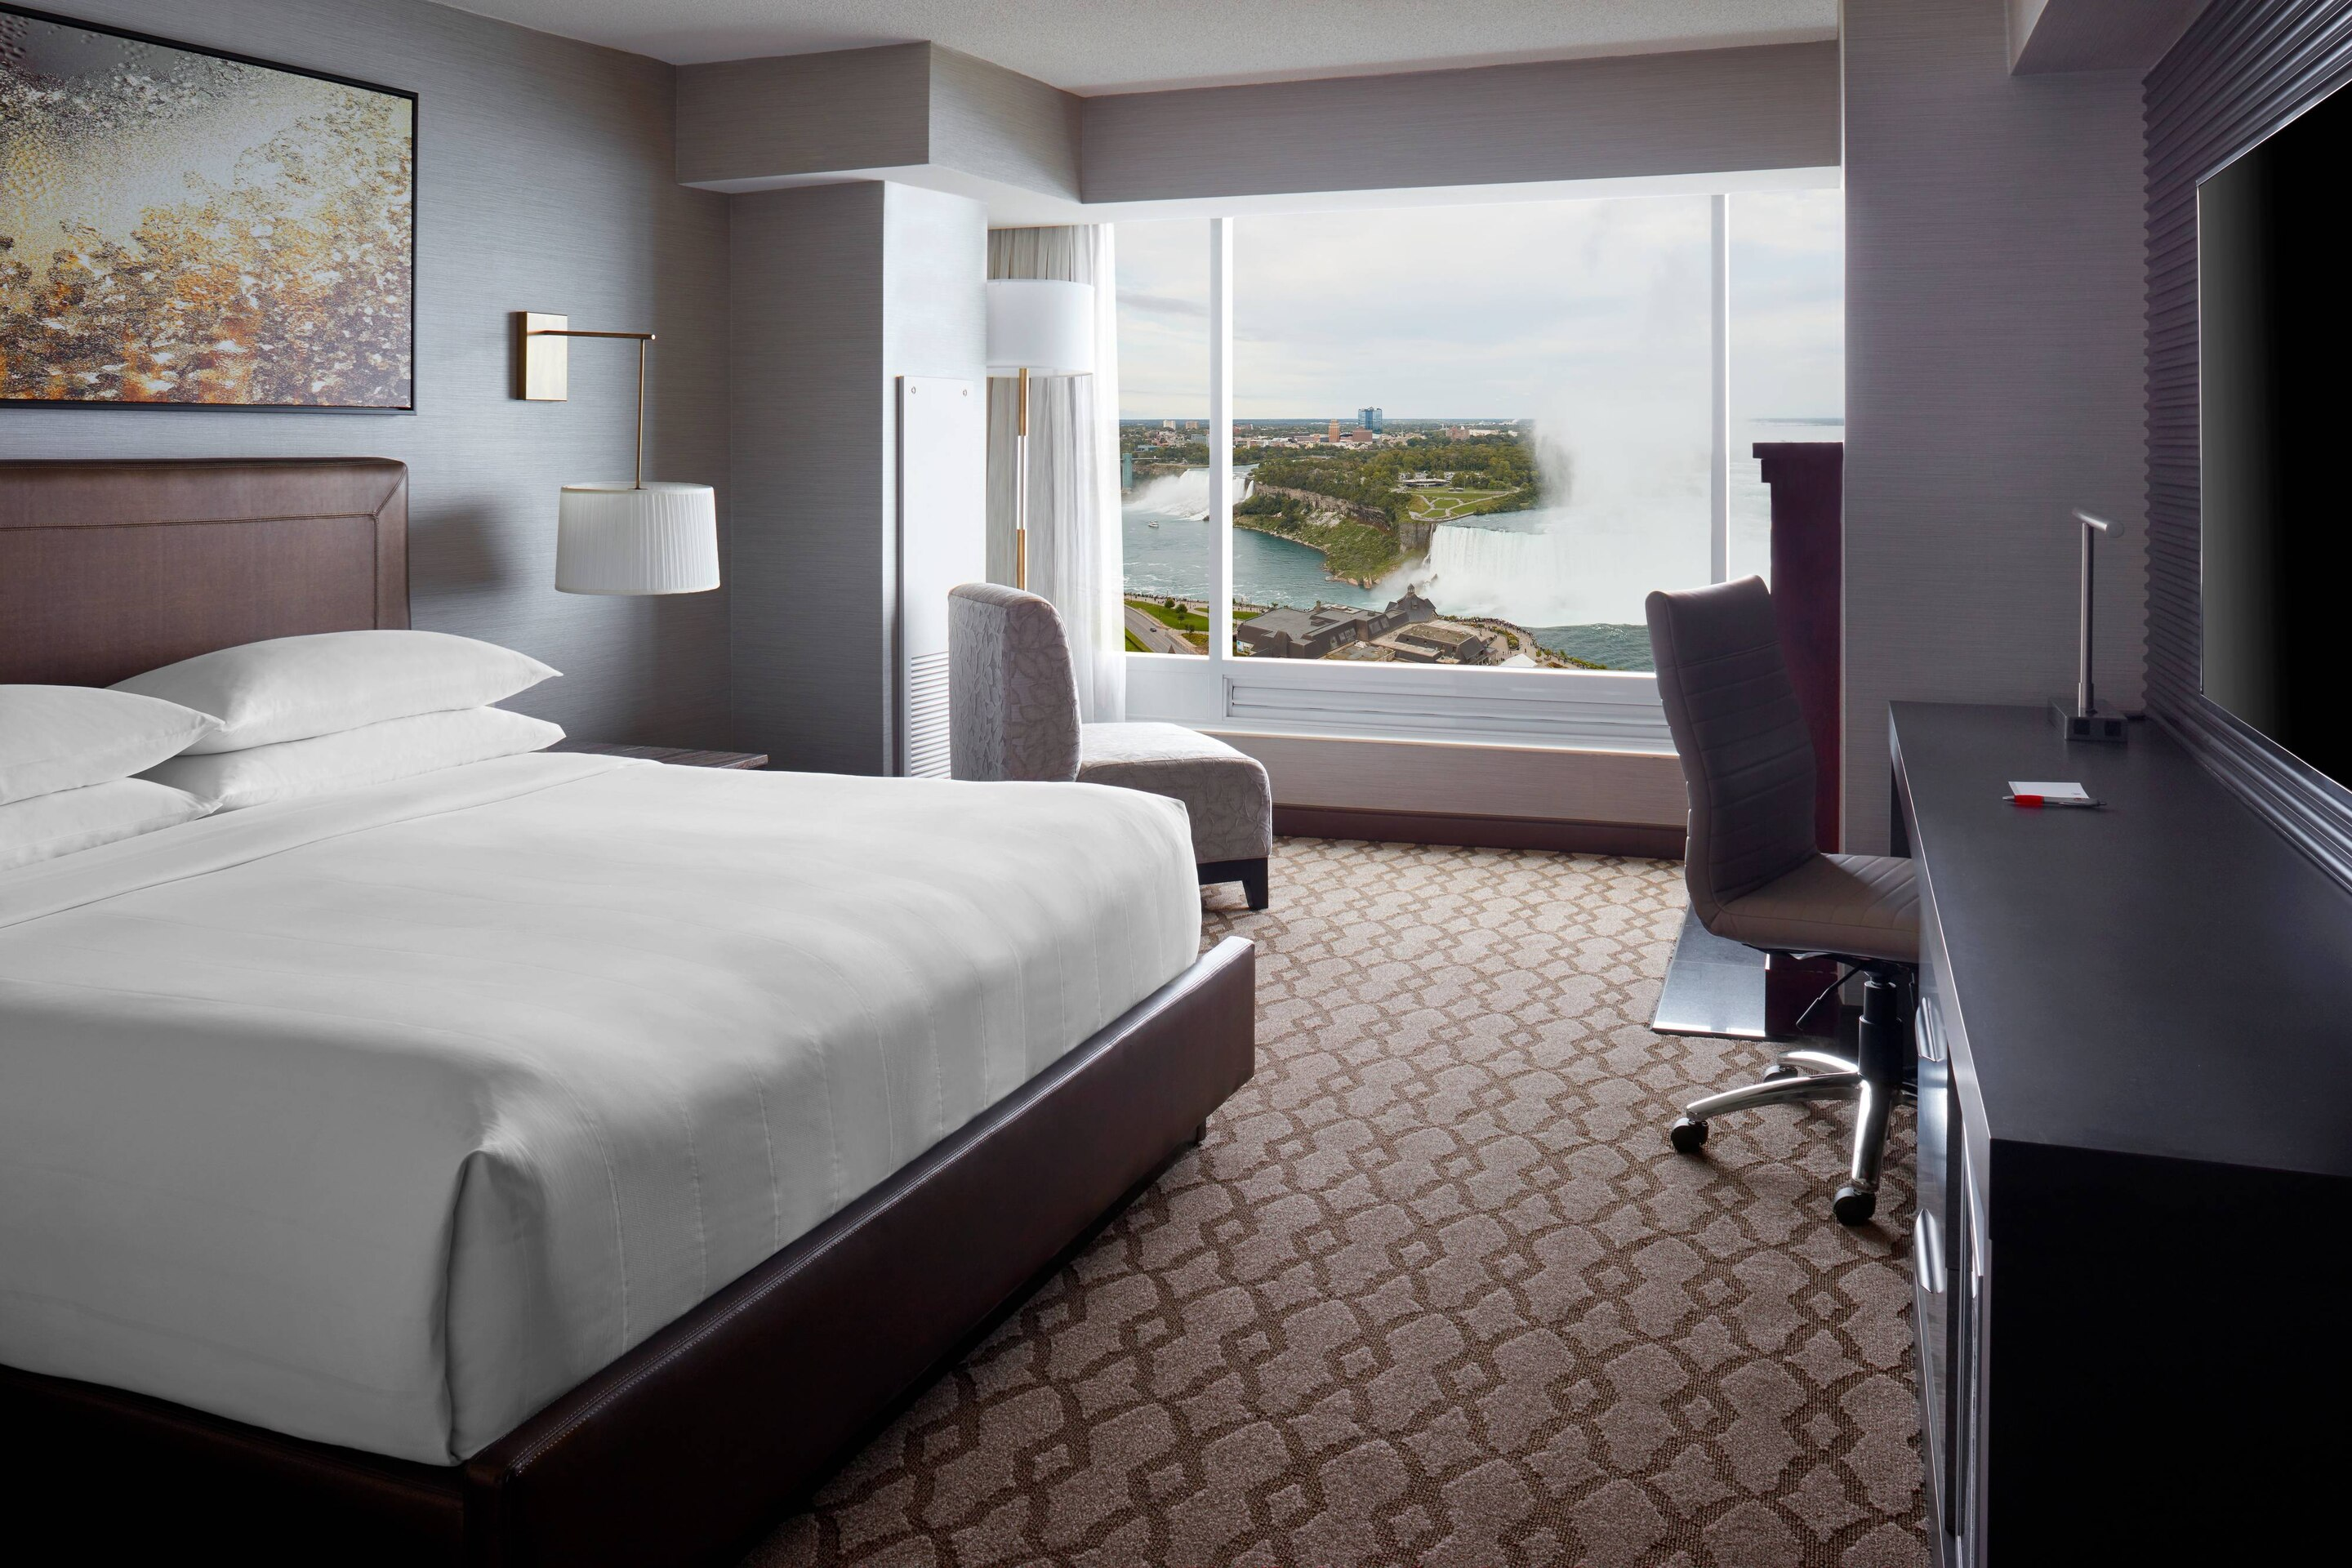 Niagara Falls Marriott Fallsview Hotel & Spa comfortable seating in window with falls view